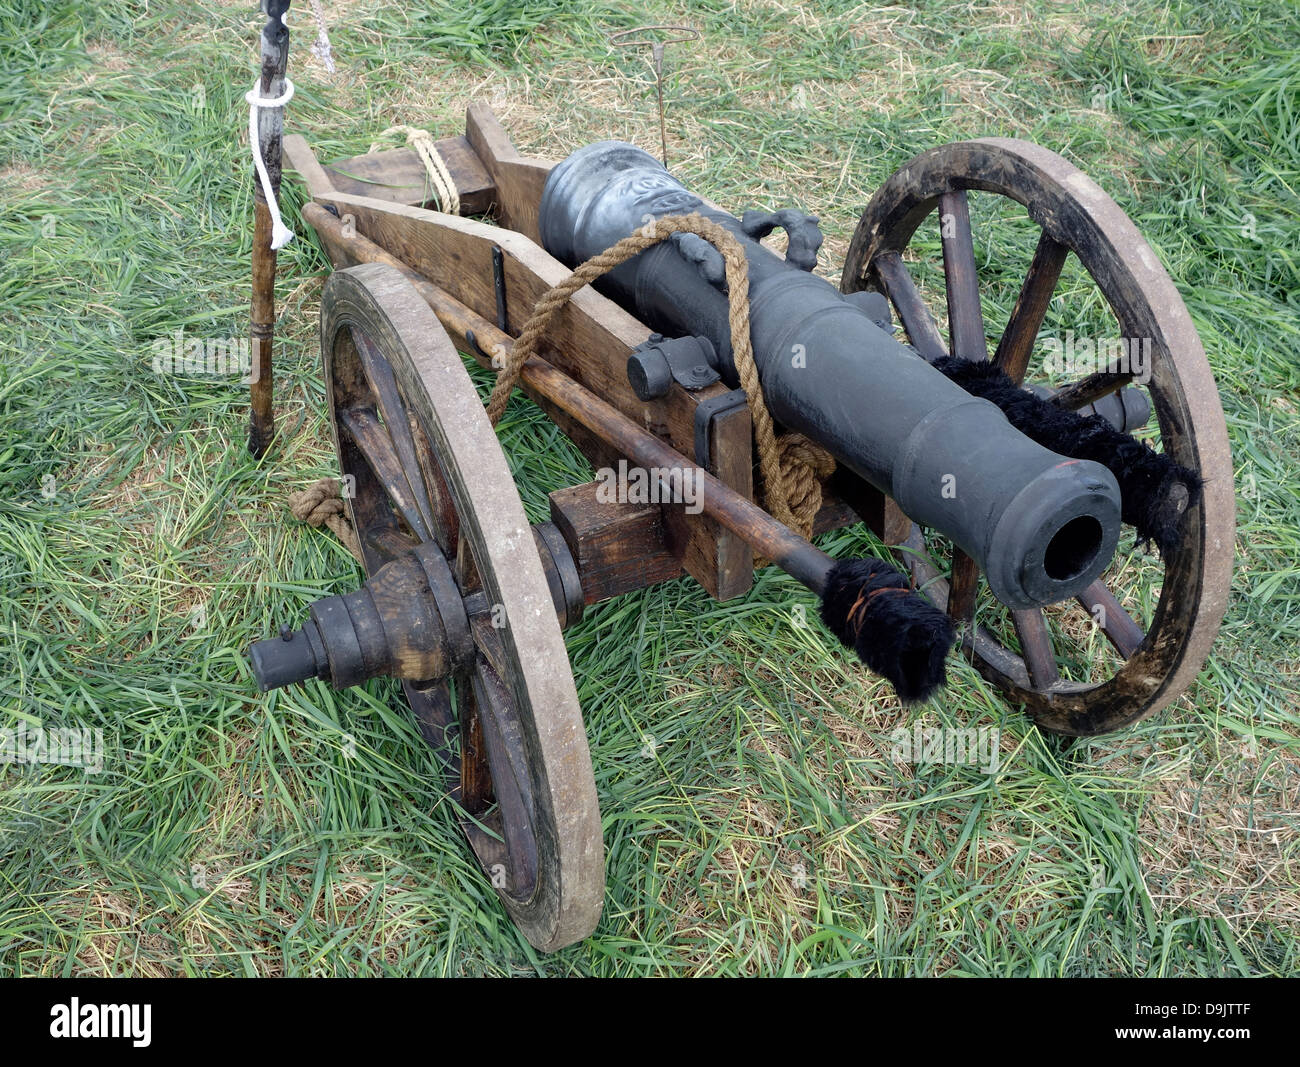 Lightweight field artillery gun from 17th century. (In use by Caroleans re-enactors). - Stock Image